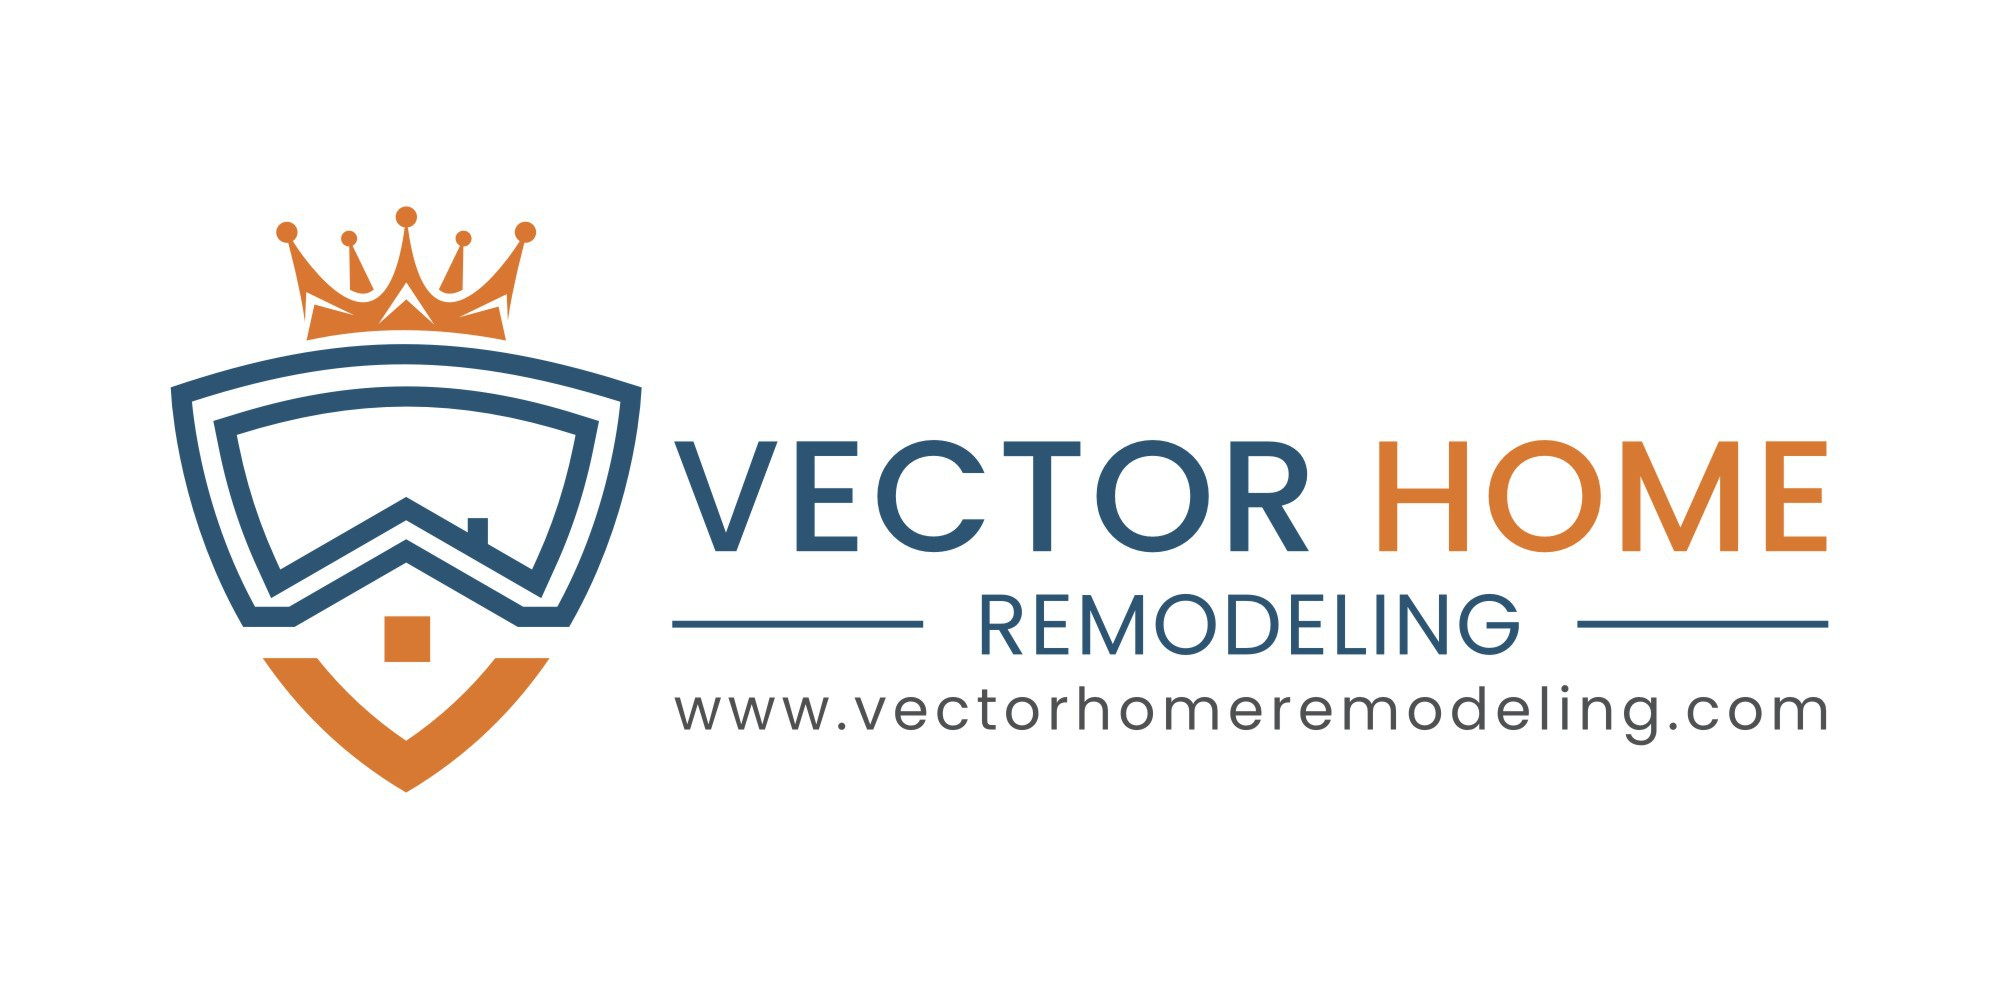 Strong Commanding Logo Needed for Remodeling Company